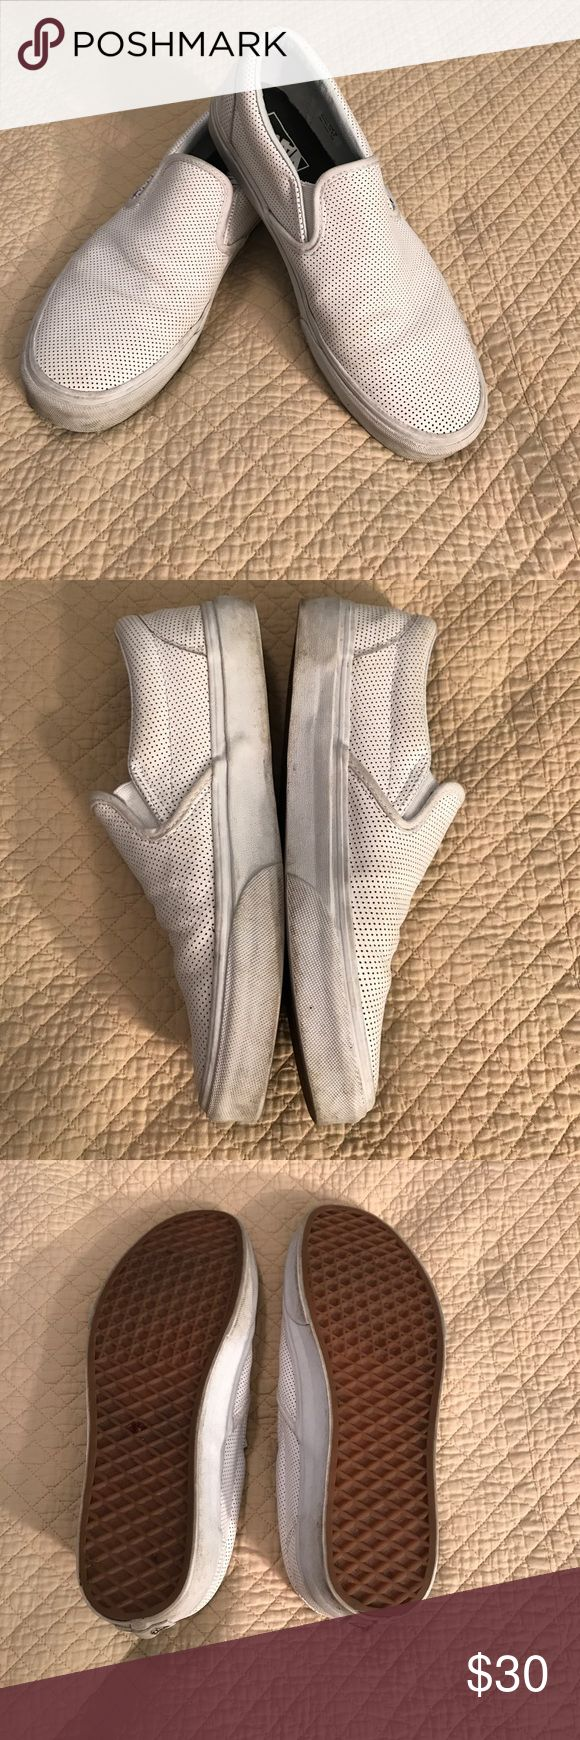 Vans, Women's Perforated Leather, White Slip-on At it again with the white vans. Cute perforated white leather slip-on vans in excellent condition. Vans Shoes